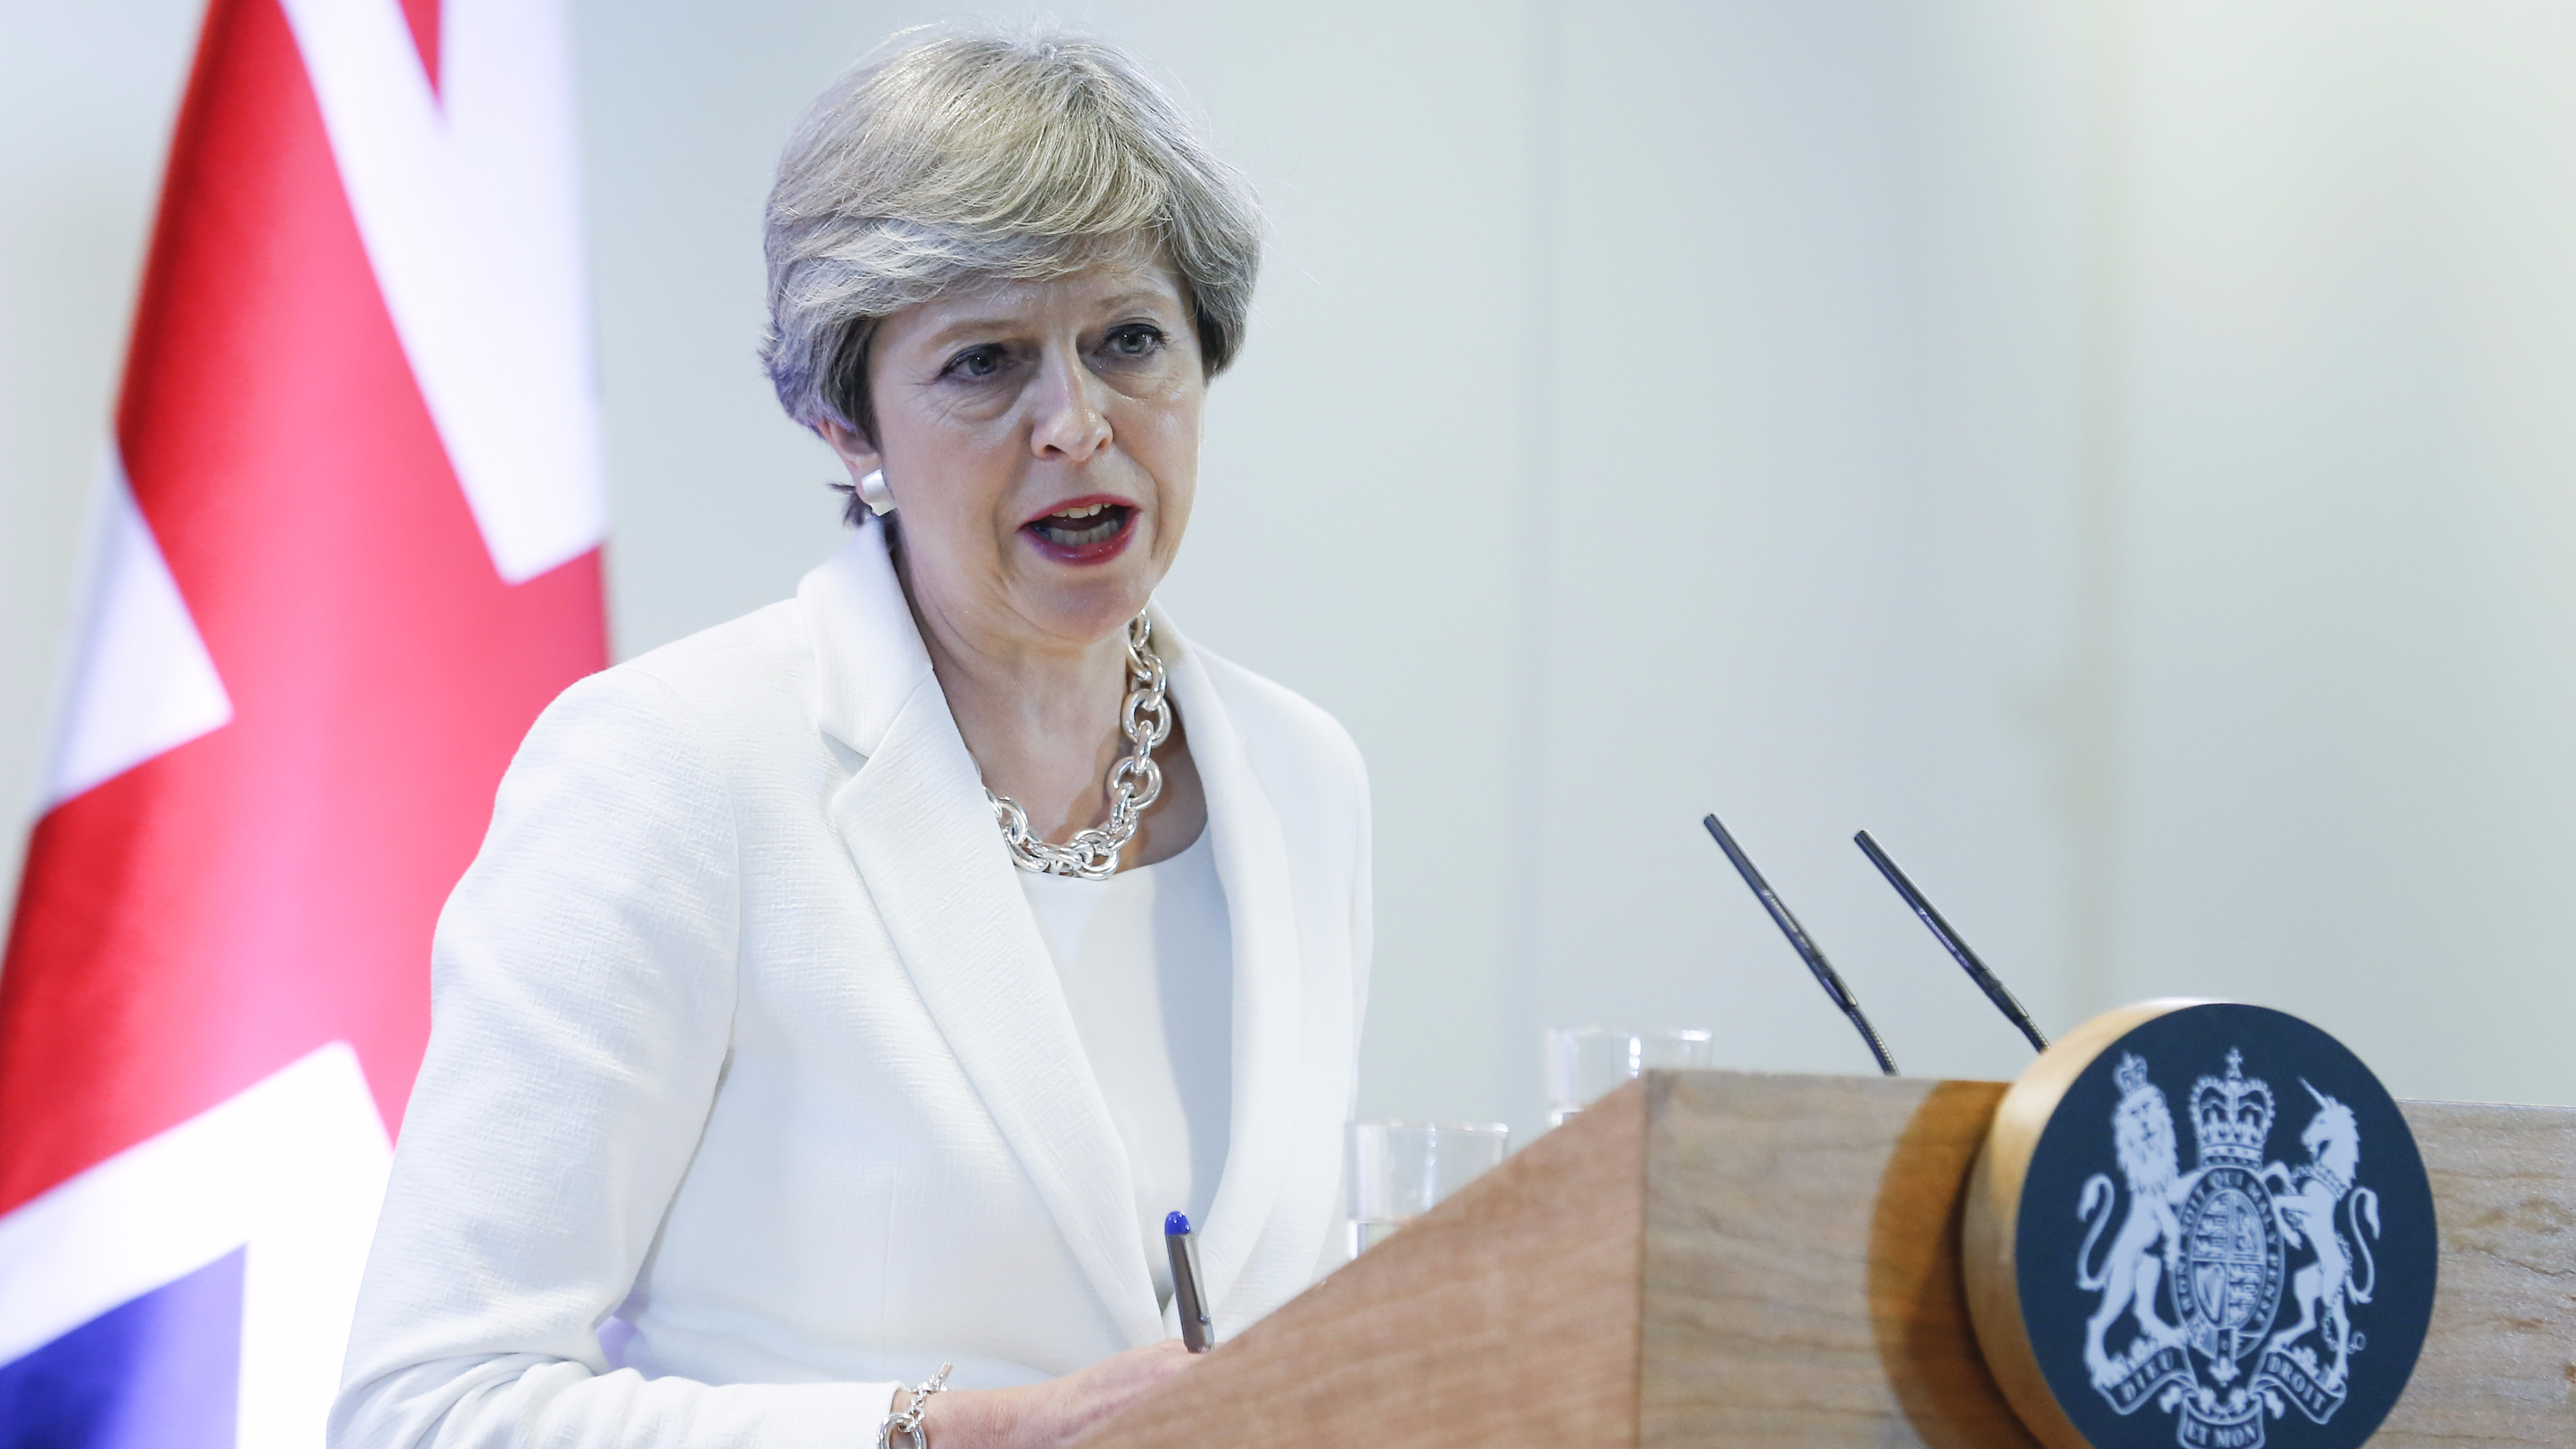 UK Prime Minister Theresa May attends a press conference in Brussels